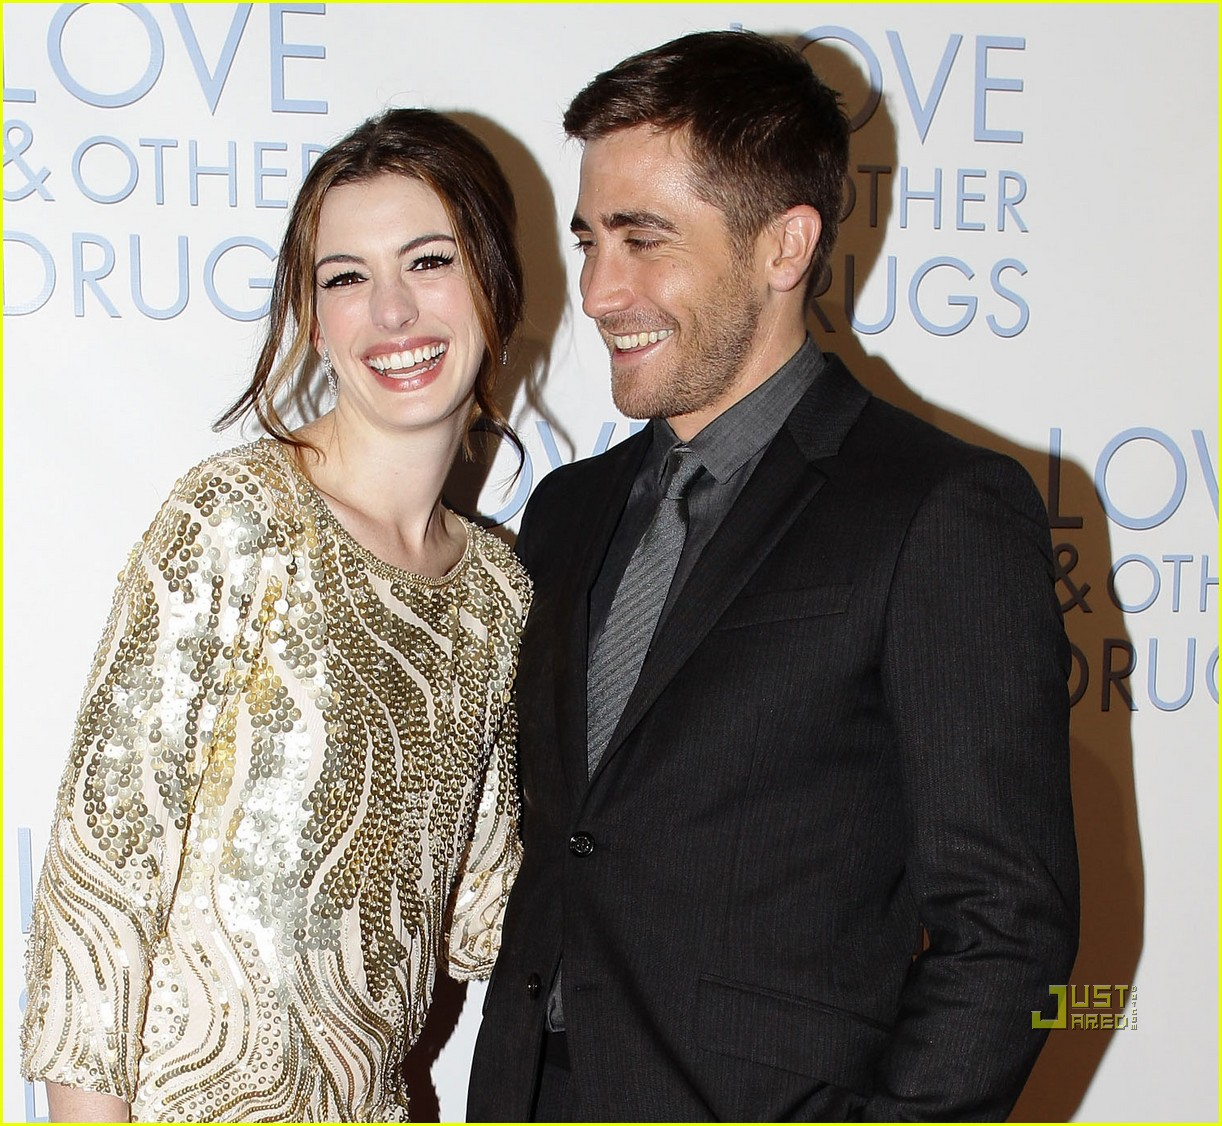 anne hathaway jake gyllenhaal love other drugs premiere sydney 01